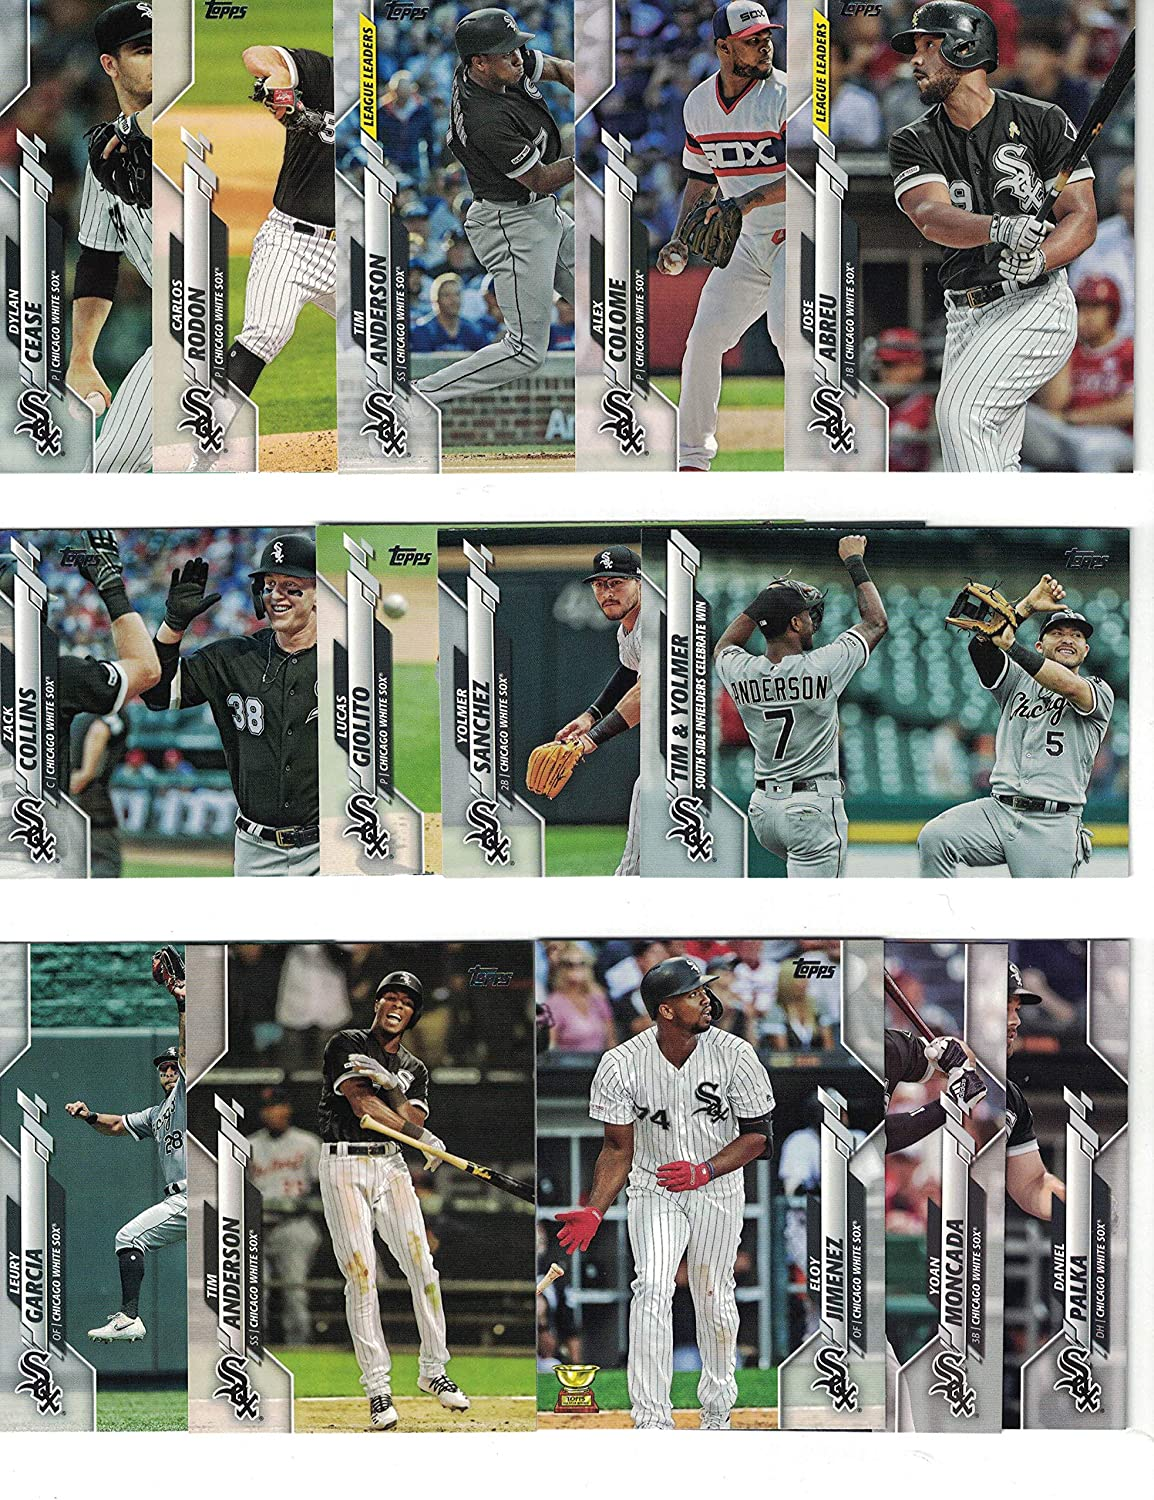 Chicago White Sox Complete 2020 Topps White Sox Baseball Team Set 26 Cards Series 1 And 2 Eloy Jimenez Luis Robert Rookie Card Plus 2020 Topps Heritage White Sox Team Set 9 Cards